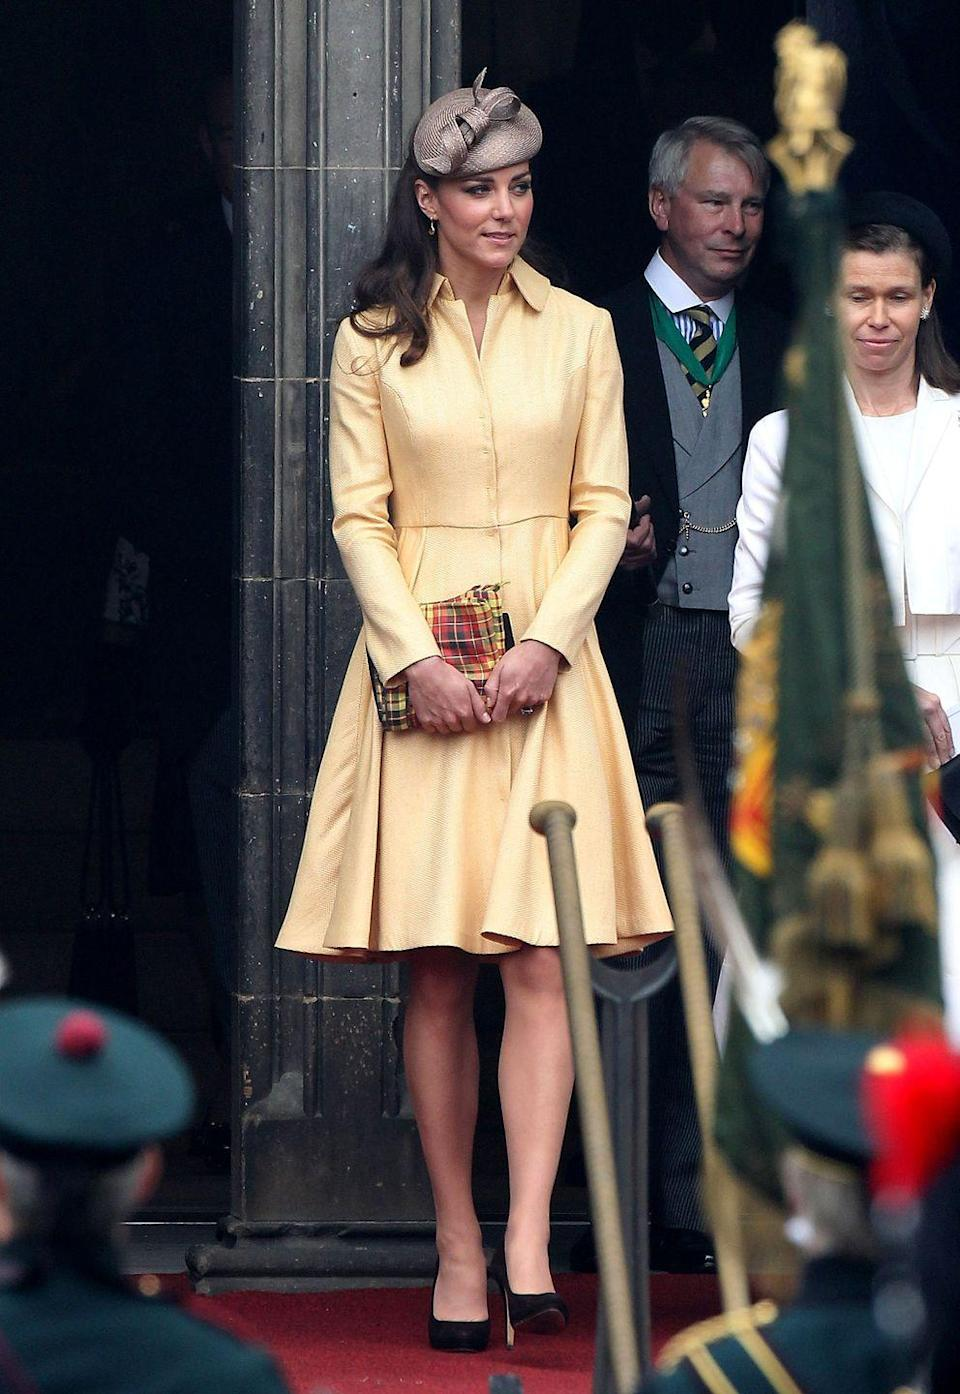 <p>To attend the Thistle Ceremony in Edinburgh, Kate wore a bespoke Emilia Wickstead coat dress in yellow. William became a part of the Order of the Thistle that day. </p>